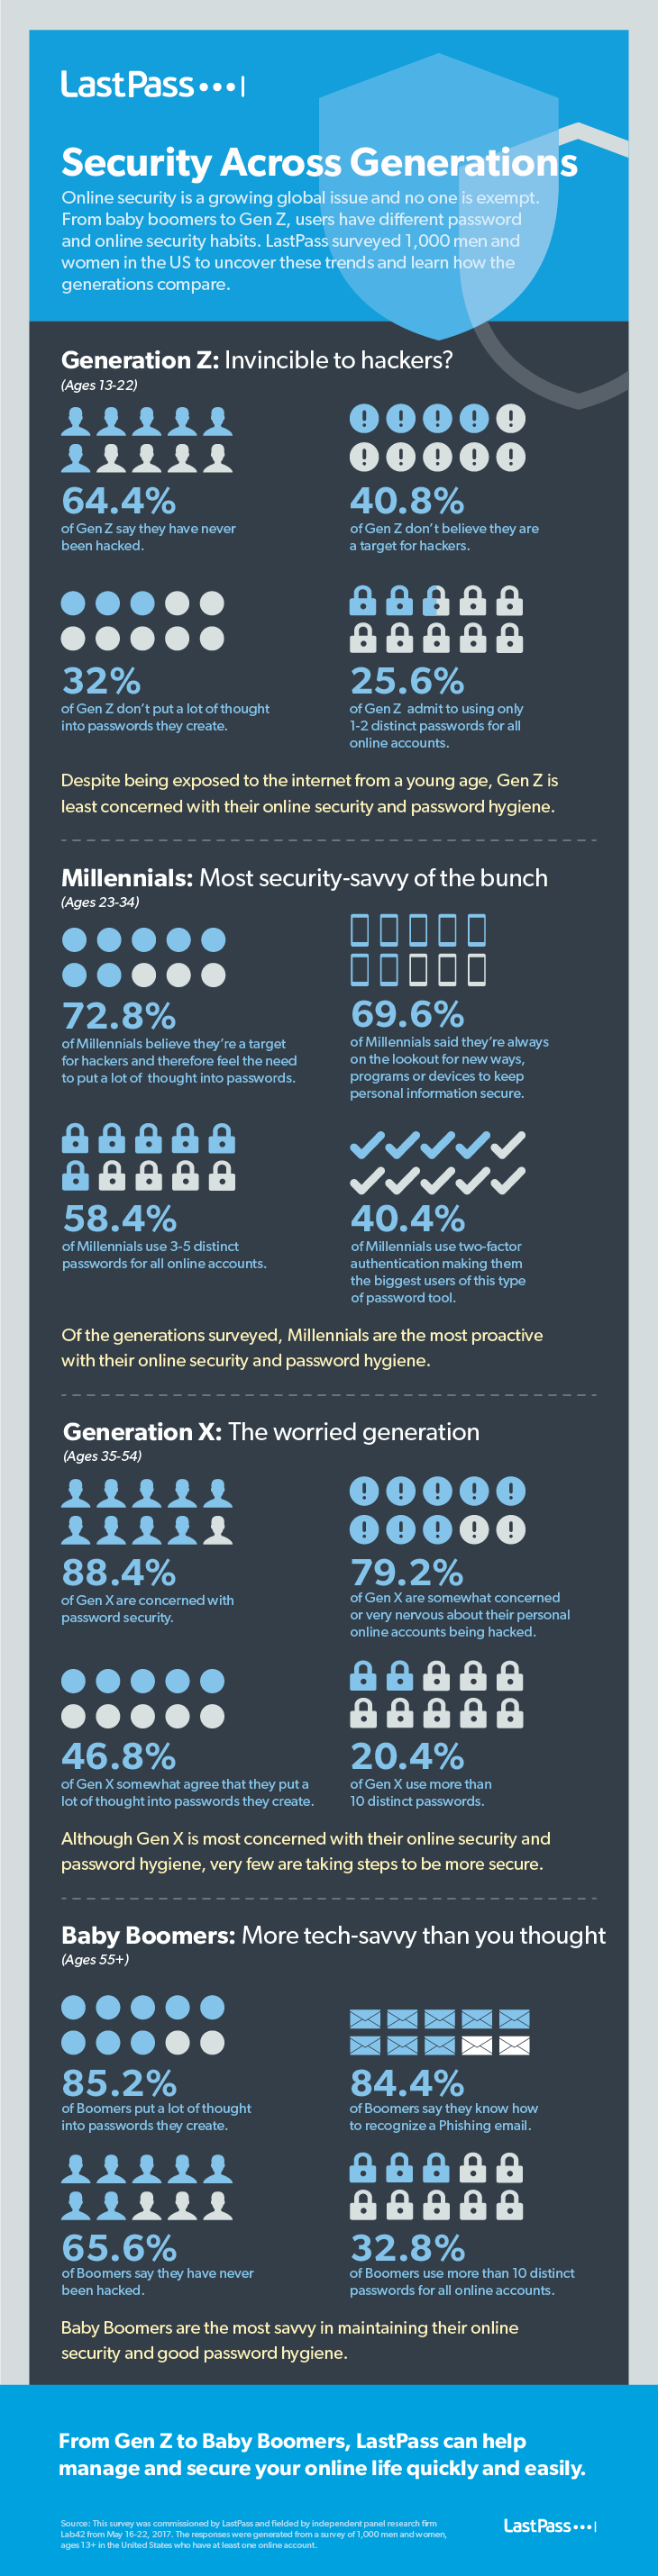 Security Across Generations - #infographic